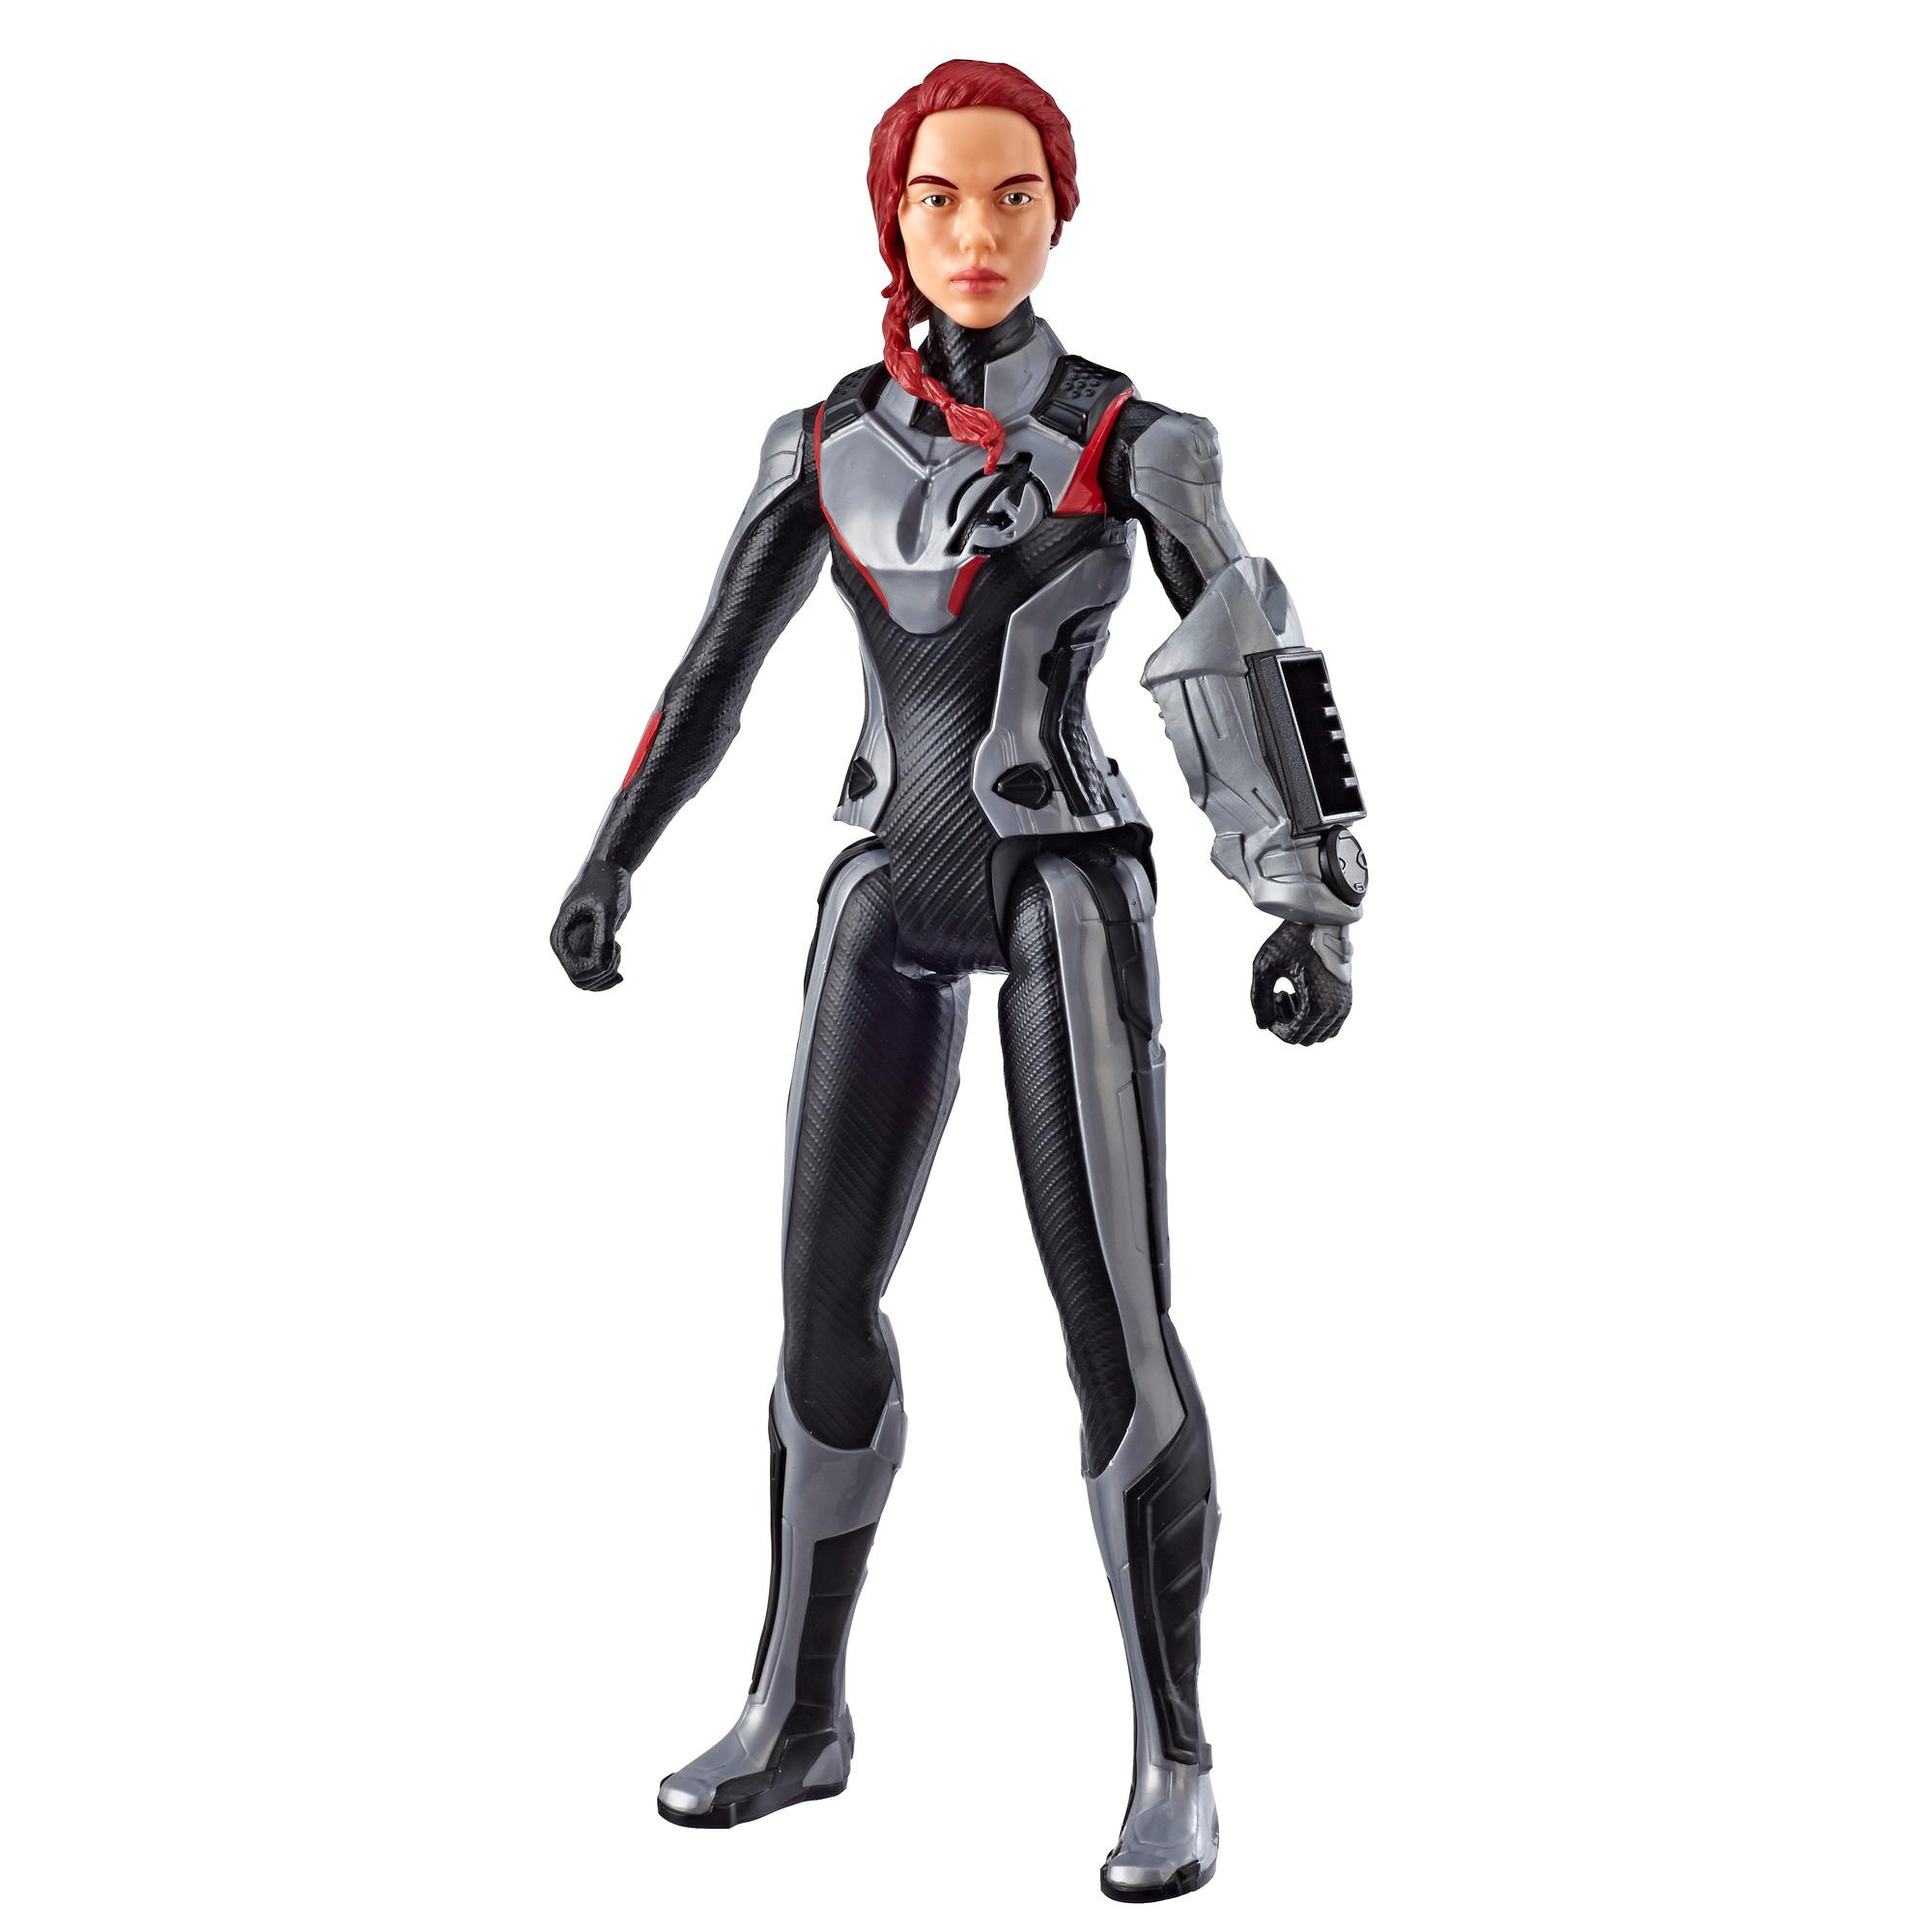 Marvel Avengers: Endgame Titan Hero Series Black Widow 12-Inch Action Figure